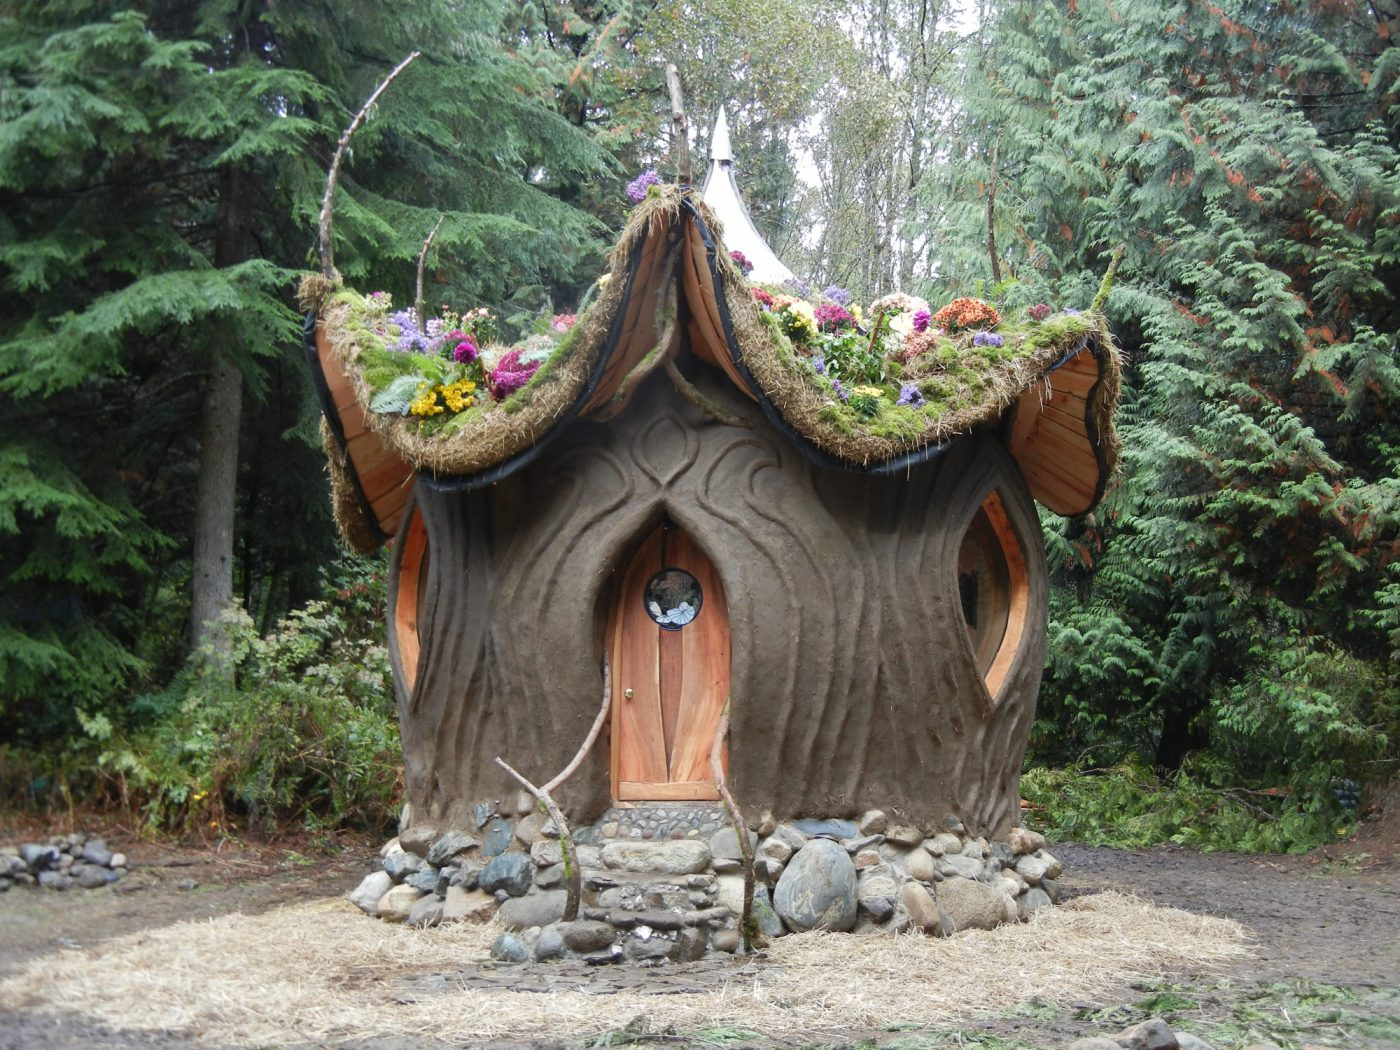 Tiny Home Designs: Earth Dome By SunRay Kelley And Sierra Sander-Hewitt